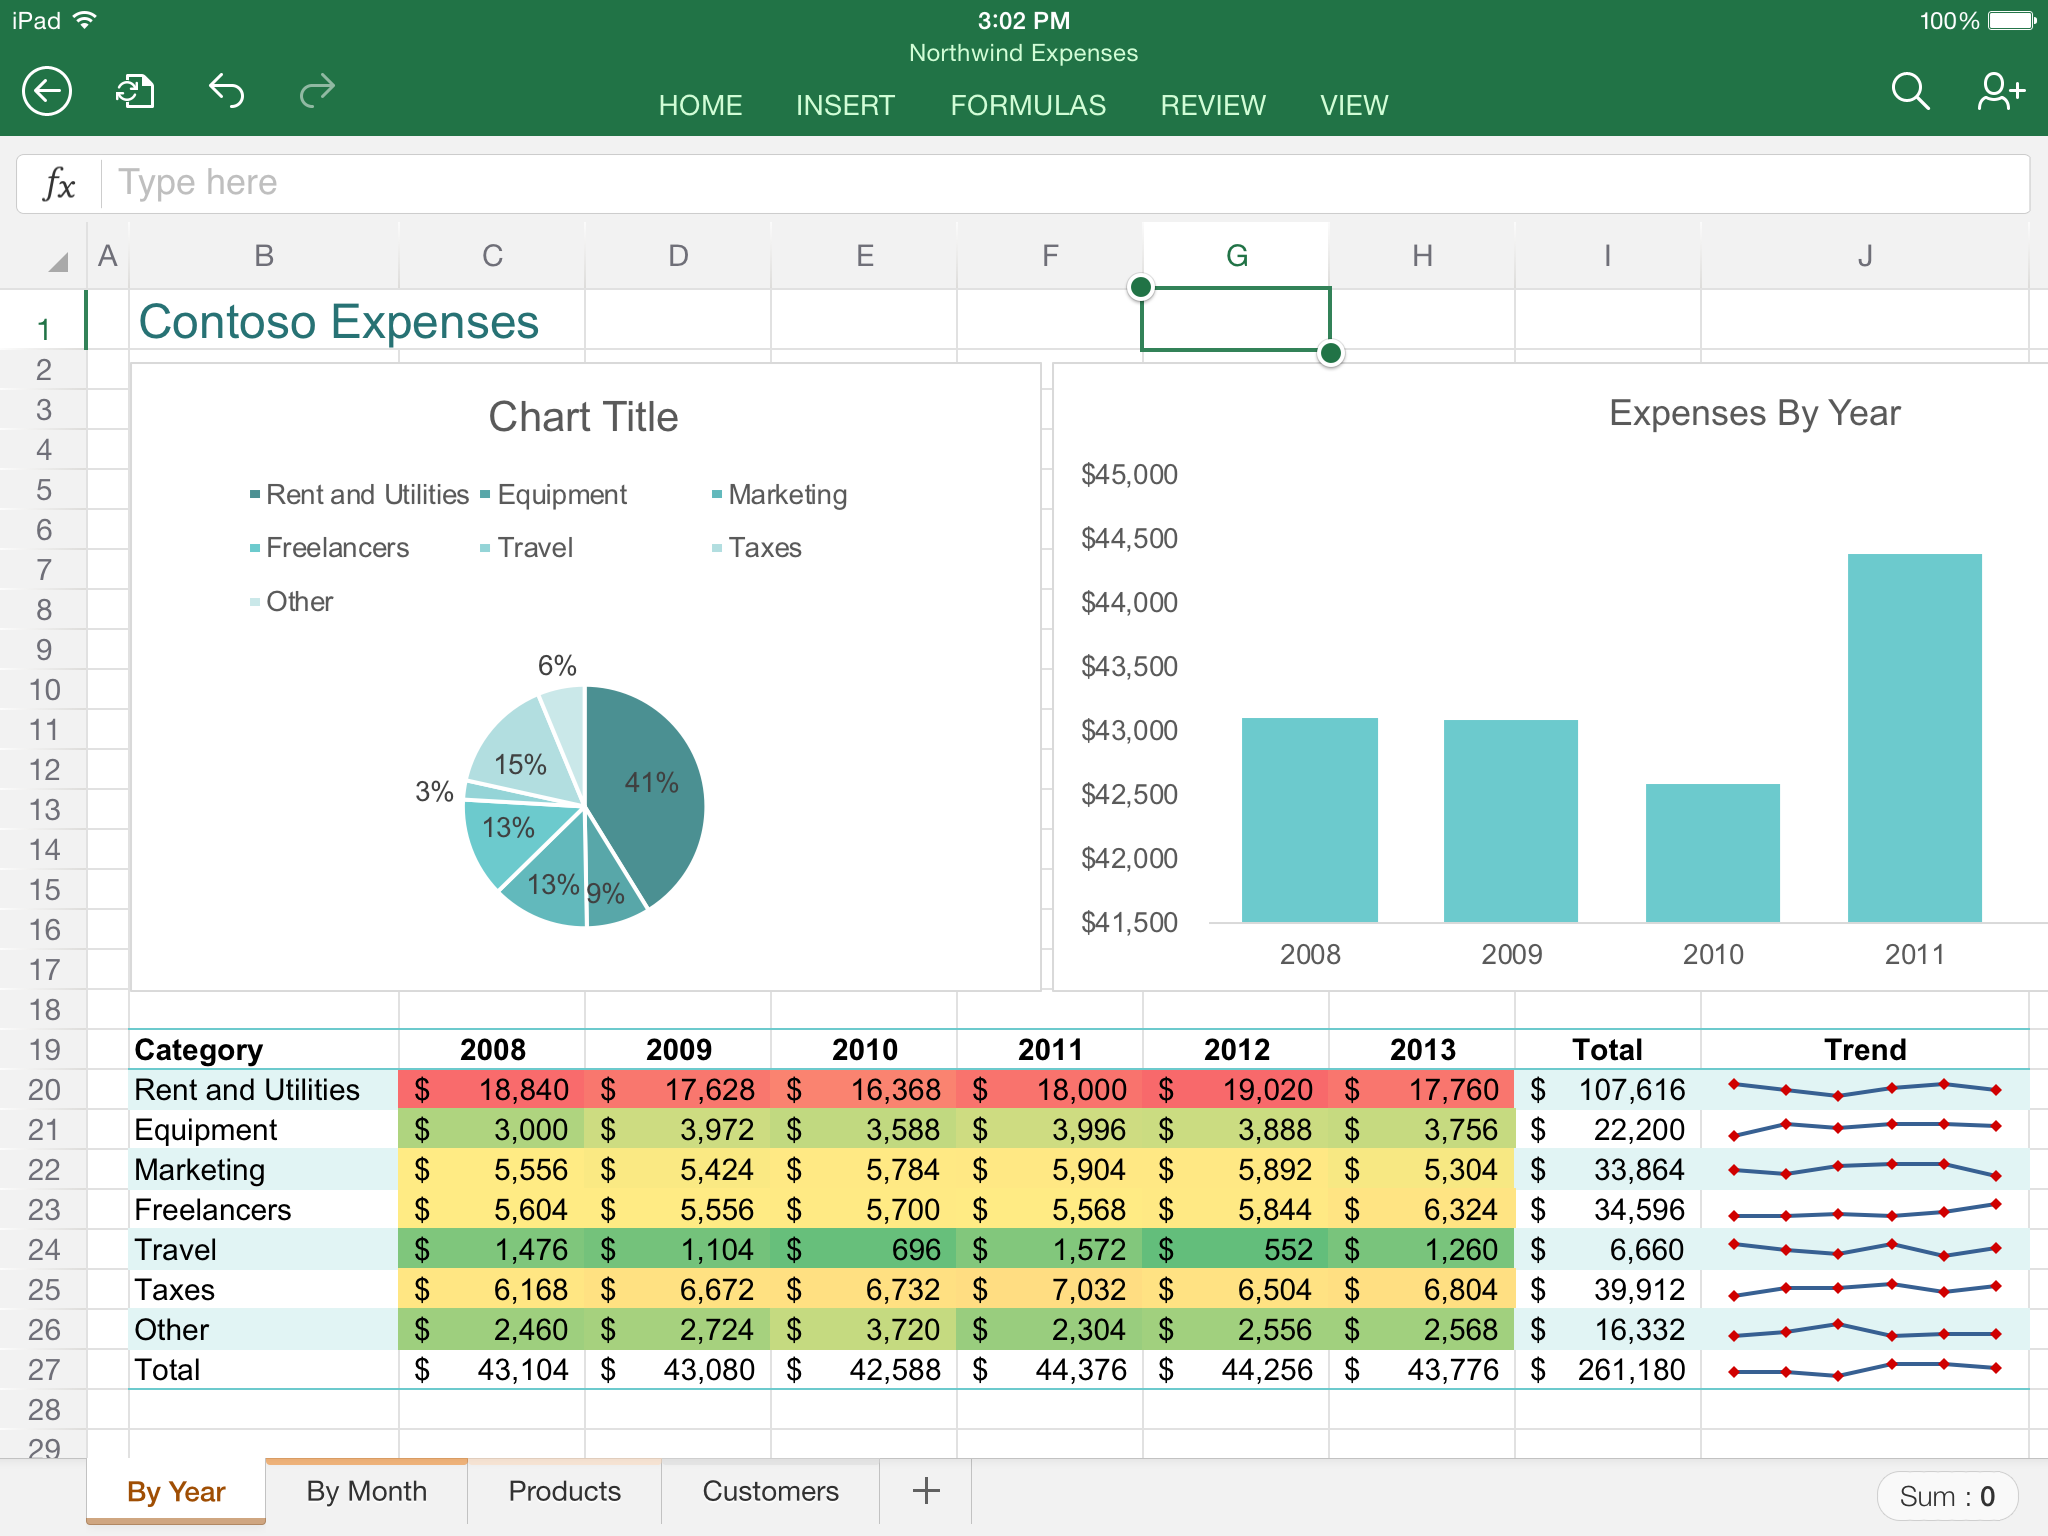 Ediblewildsus  Splendid App Highlight Excel  Mobile Digital Now With Lovable Excel In Action With Alluring If Else Condition In Excel Also Advanced Excel Certification In Addition If Conditions In Excel And Excel Text Command As Well As Printable Excel Calendar Additionally Excel  From Youstonybrookedu With Ediblewildsus  Lovable App Highlight Excel  Mobile Digital Now With Alluring Excel In Action And Splendid If Else Condition In Excel Also Advanced Excel Certification In Addition If Conditions In Excel From Youstonybrookedu